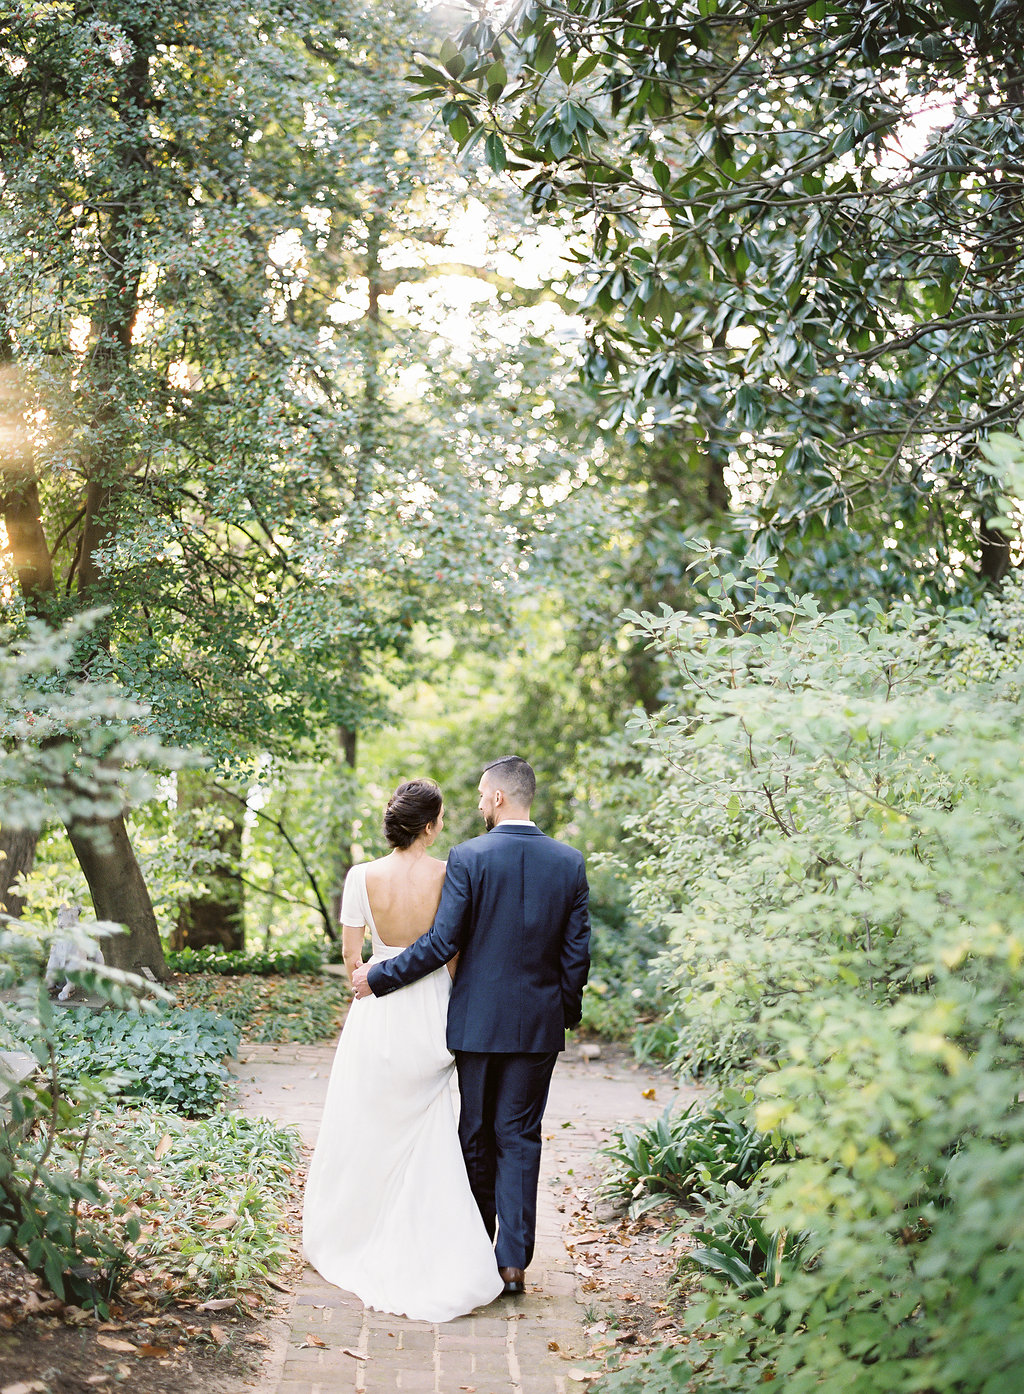 Fine art film photographer photography wedding engagement washington DC georgetown virginia modern bride destination inspiration tuscan inspired minimal classic timeless california ny garden couple